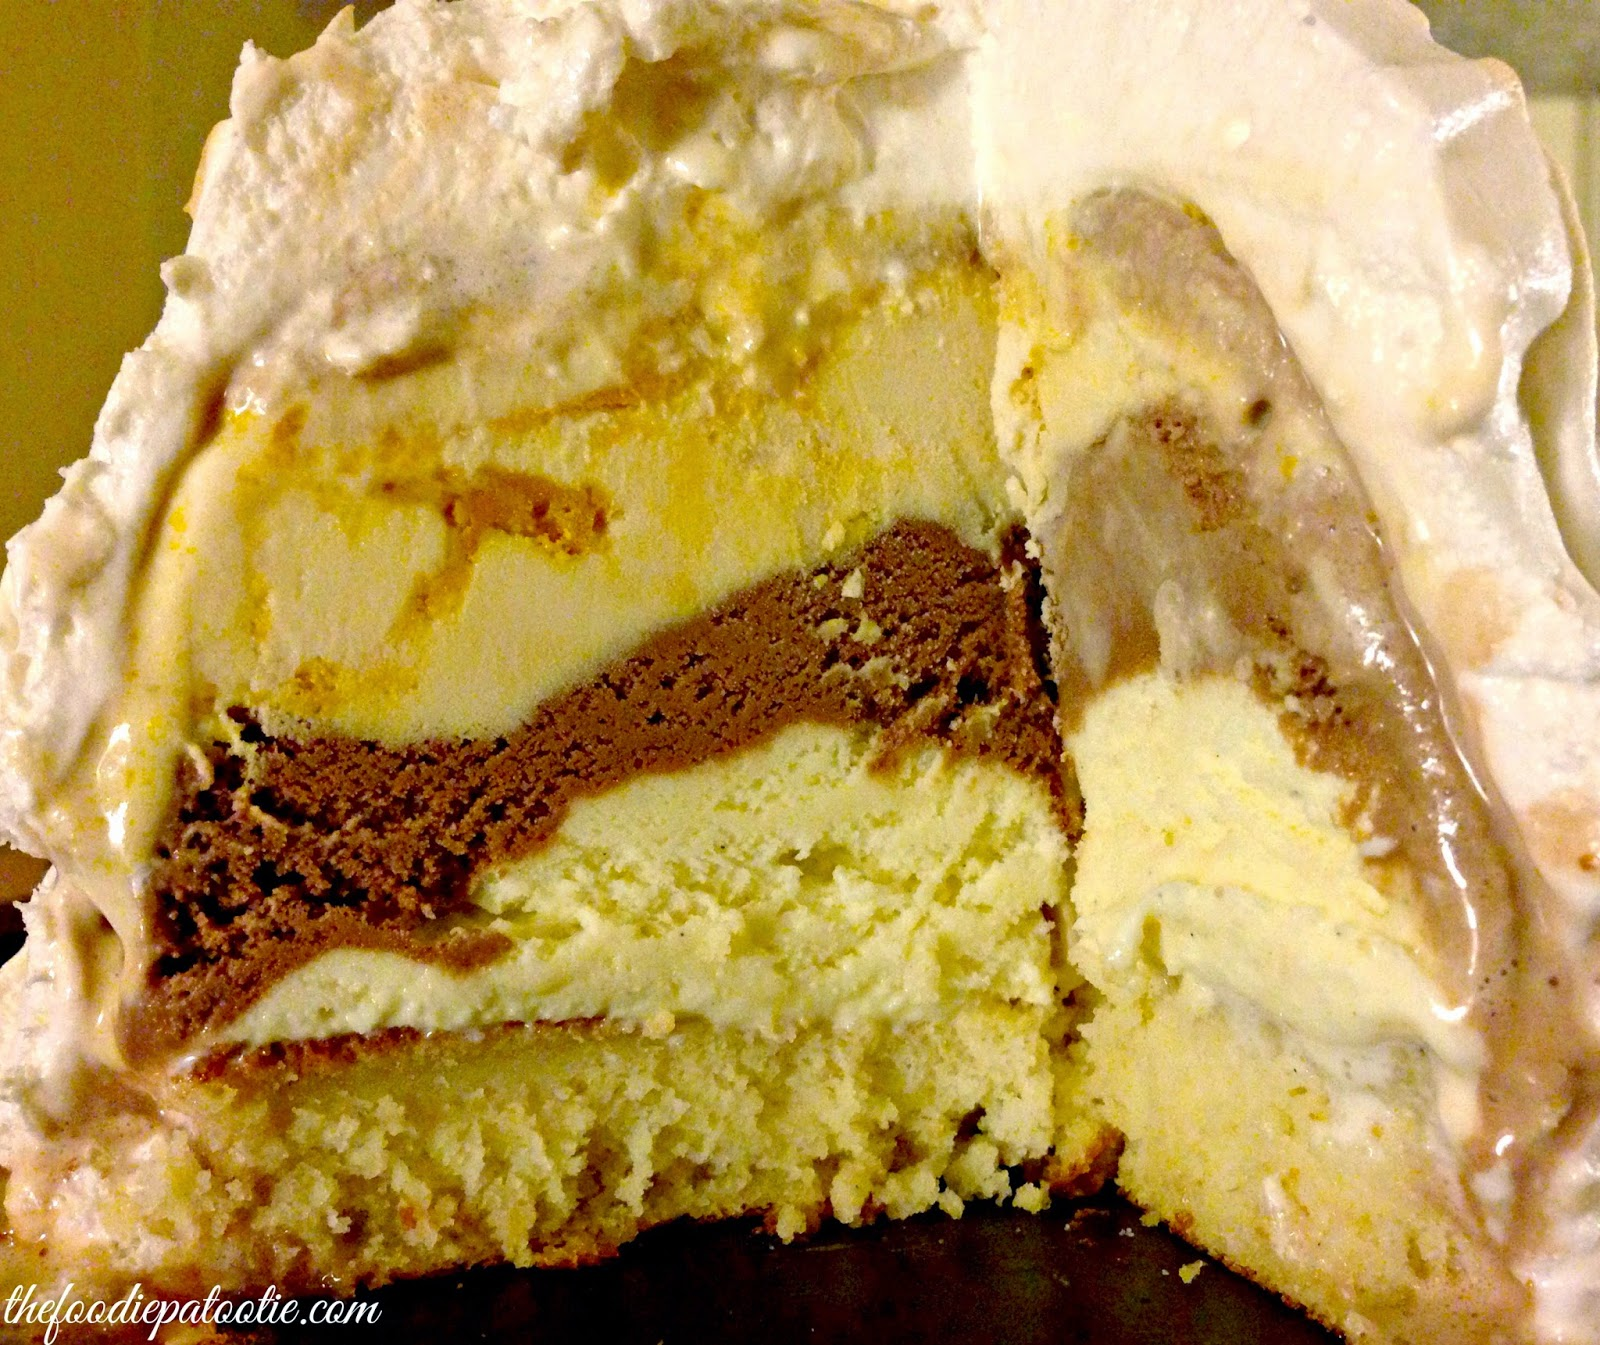 http://thefoodiepatootie.com/recipes/national-baked-alaska-day/